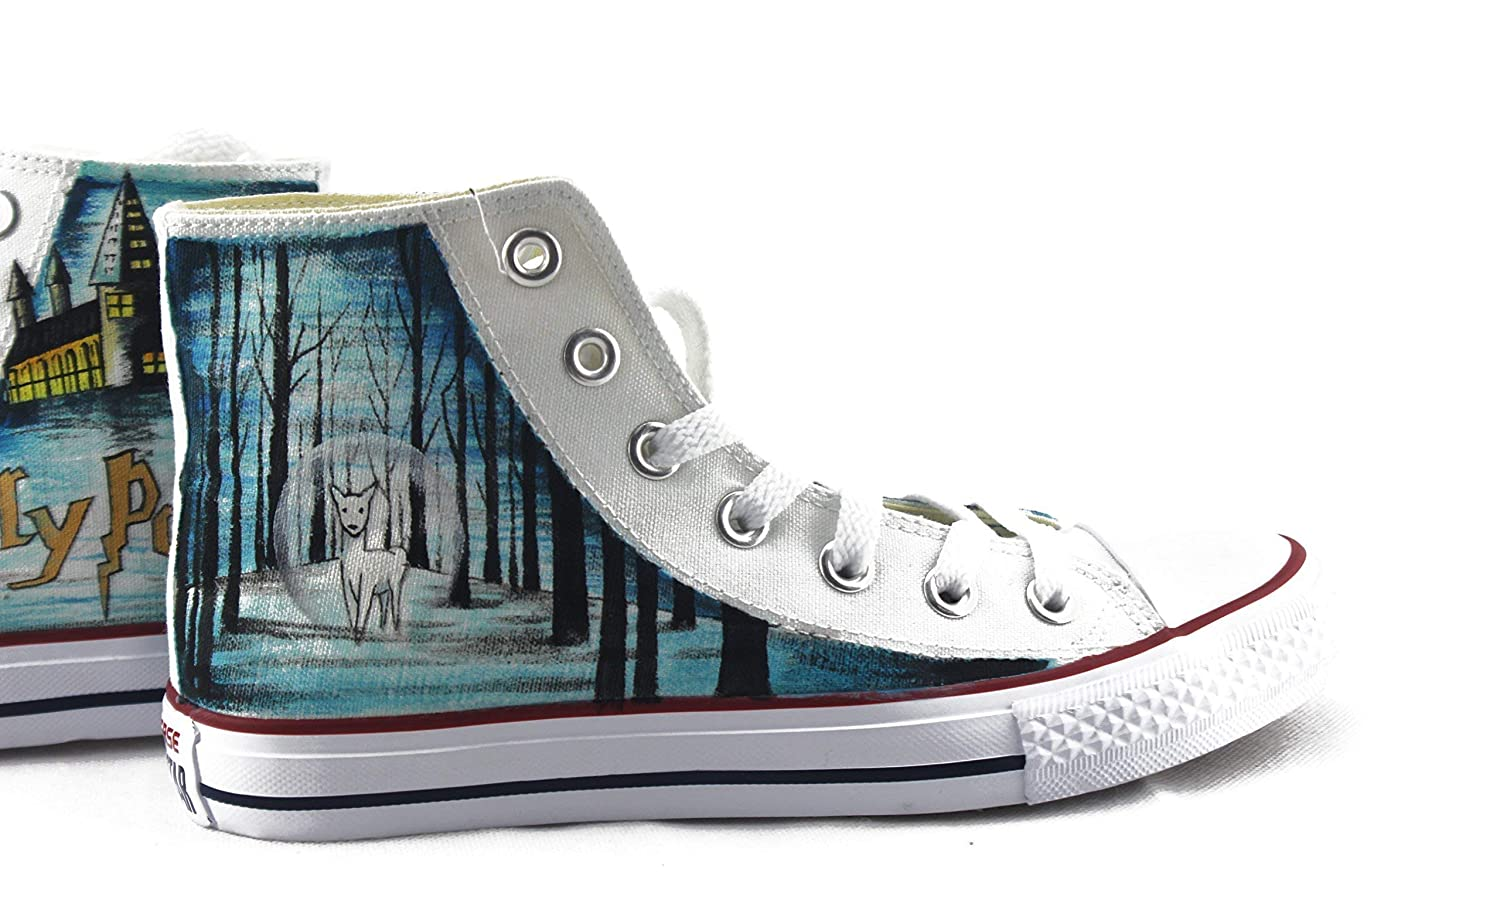 3e4f532d72f8 Harry potter sneakers hand painted shoes custom men jpg 1500x910 Converse  chuck harry potter related